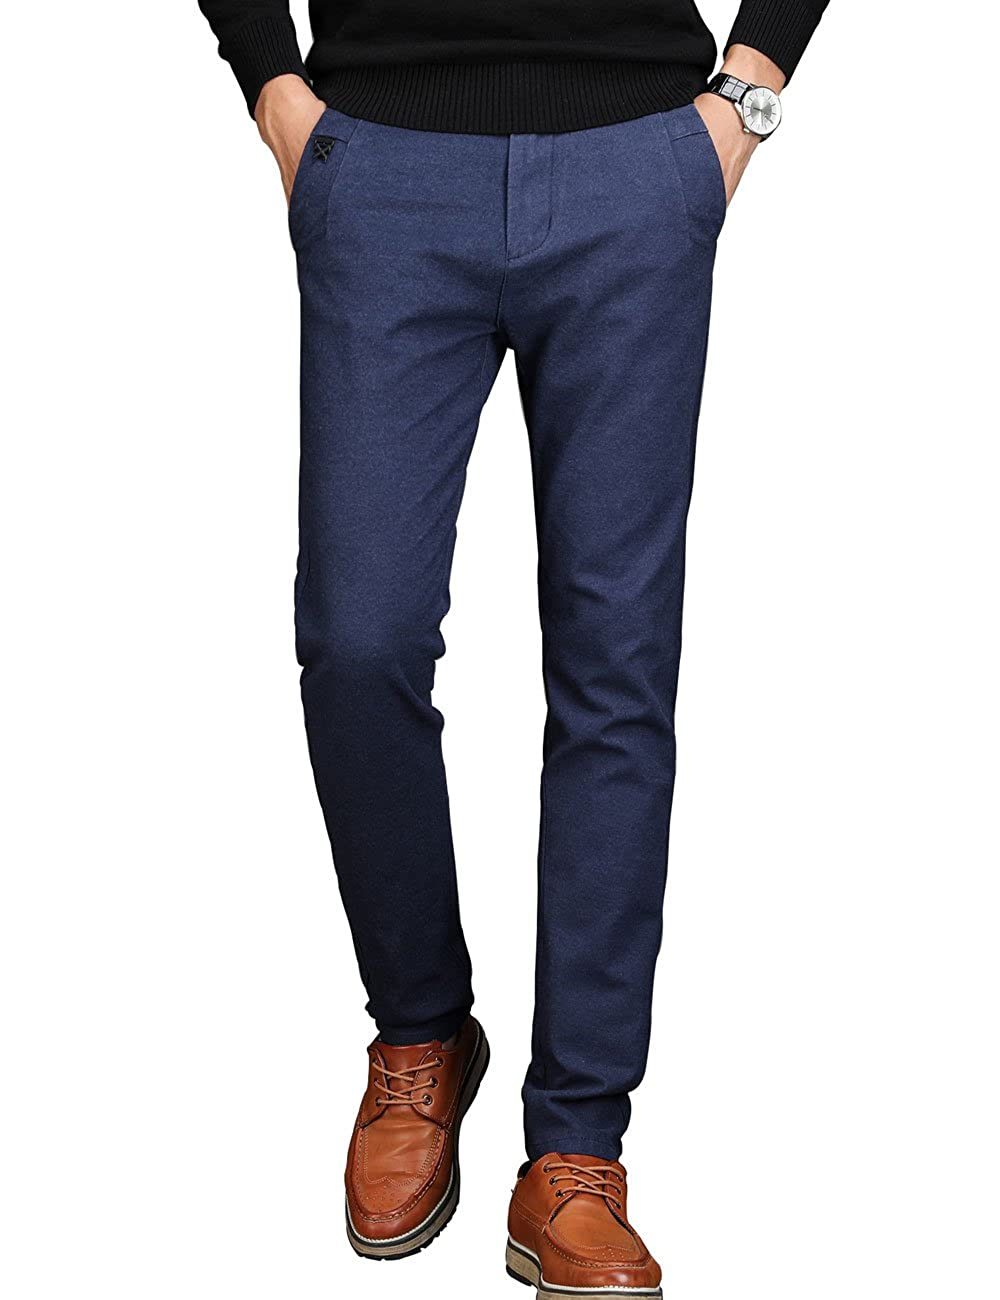 VEGORRS Men's Tapered Slim Fit Wrinkle-Free Casual Stretch Dress Pants, Classic Fit Flat Front Trousers